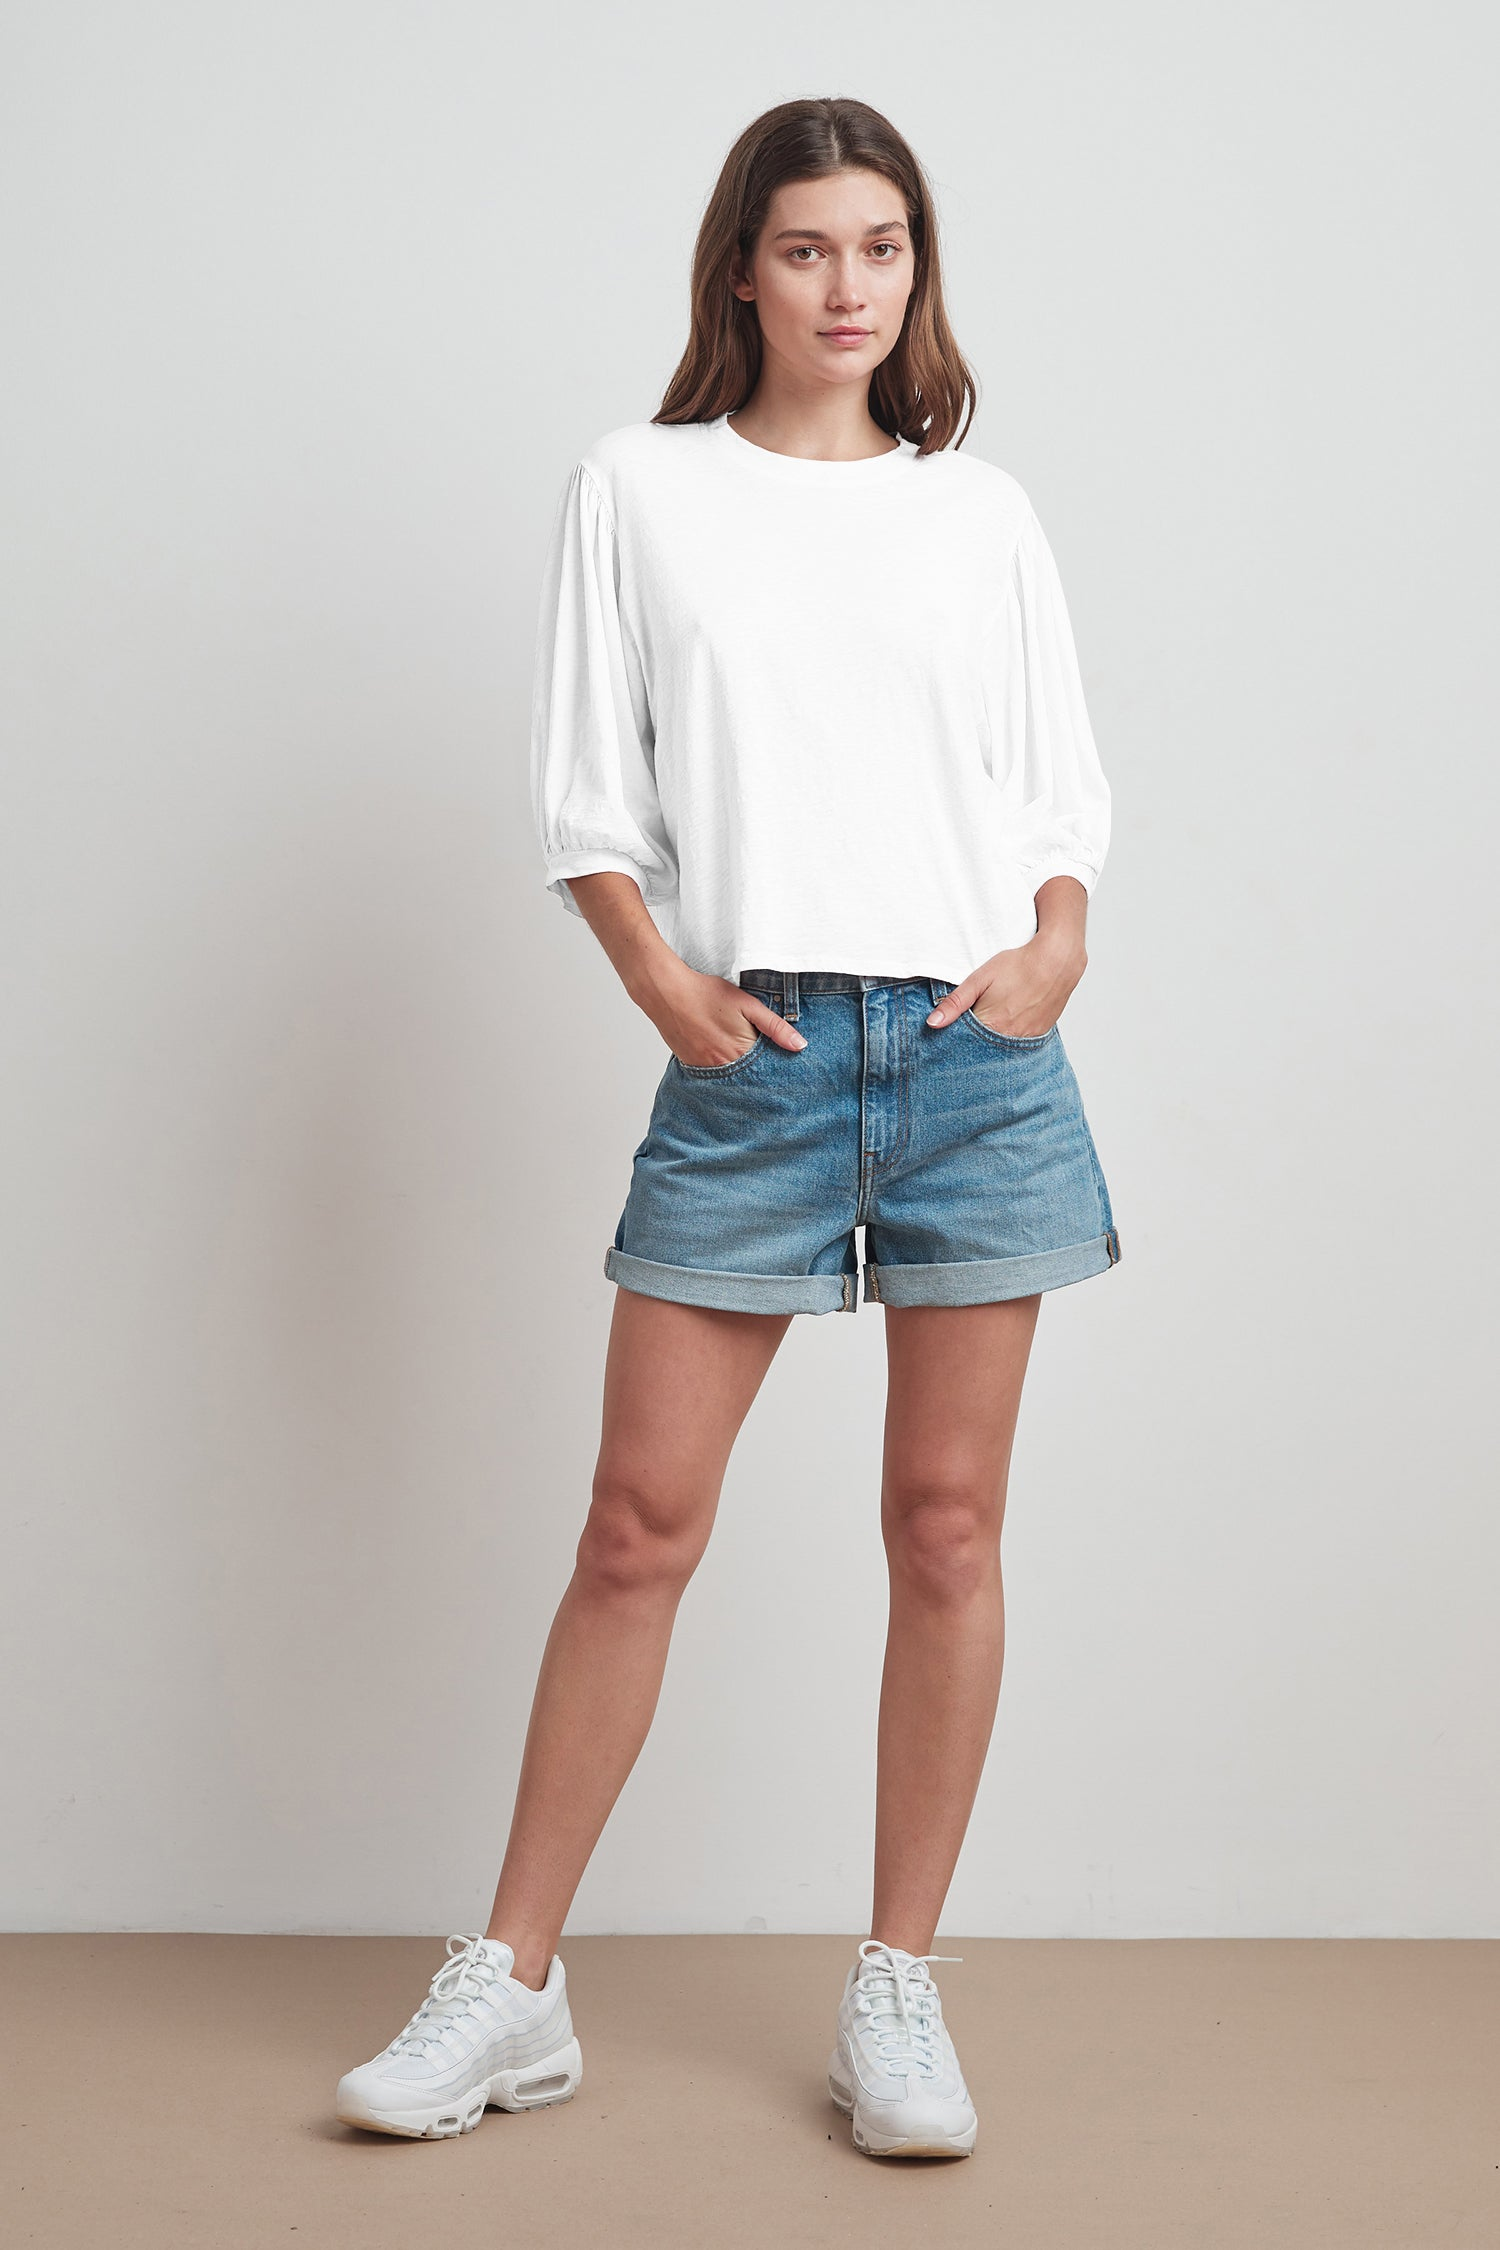 AMARA COTTON SLUB 3/4 SLEEVE TEE IN WHITE